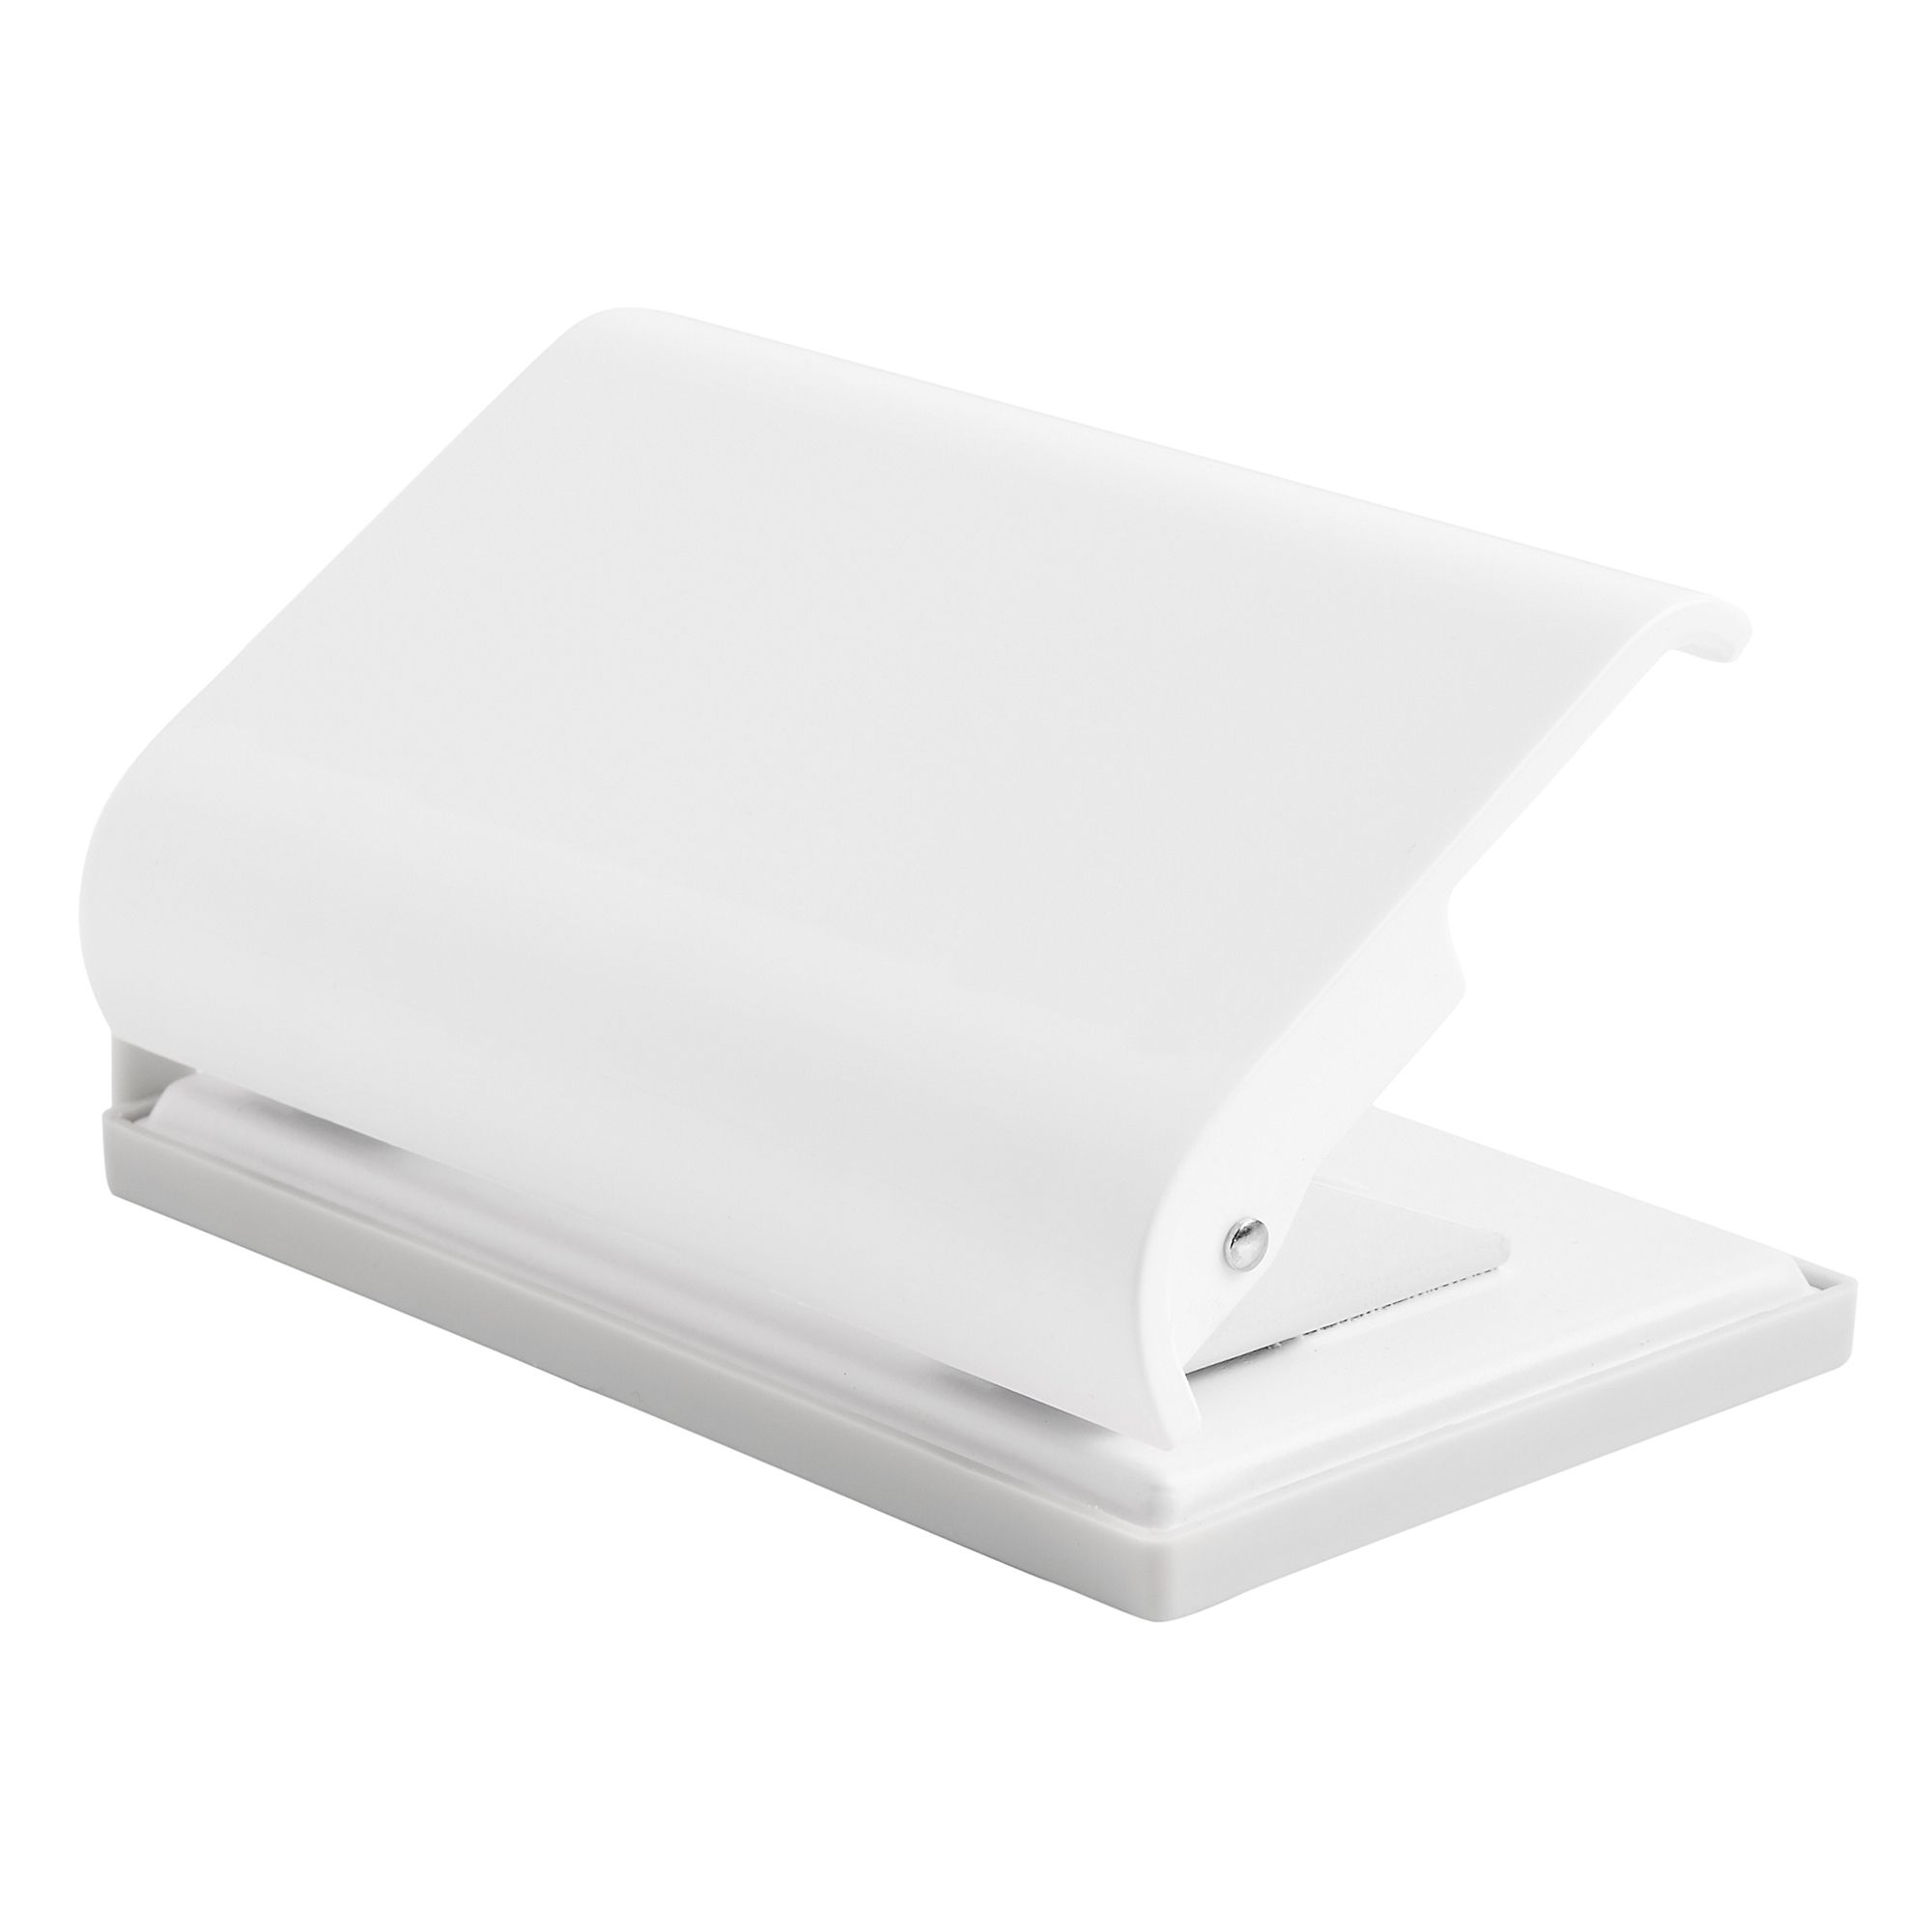 Matching Office Desk Accessories A Simple Hole Punch In Gorgeous White Will Add Some Style To Your